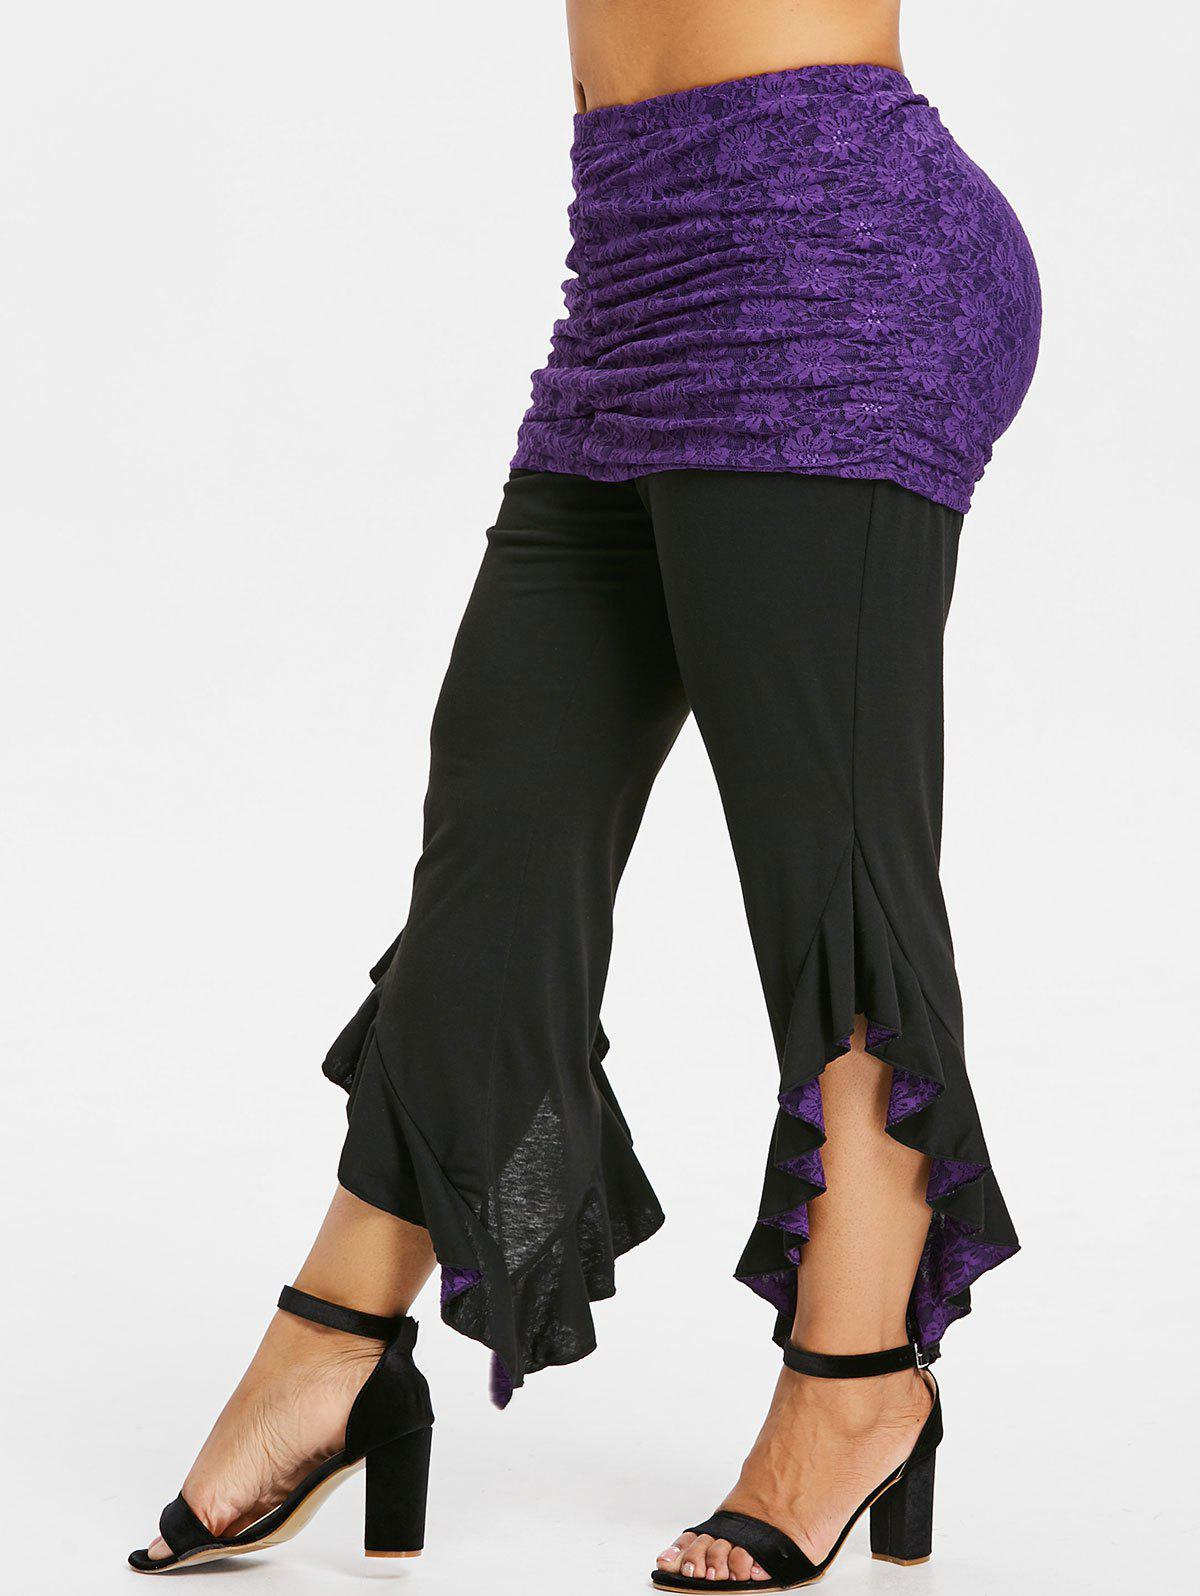 Affordable Rosegal Plus Size Ruffle Leggings with Lace Skirt